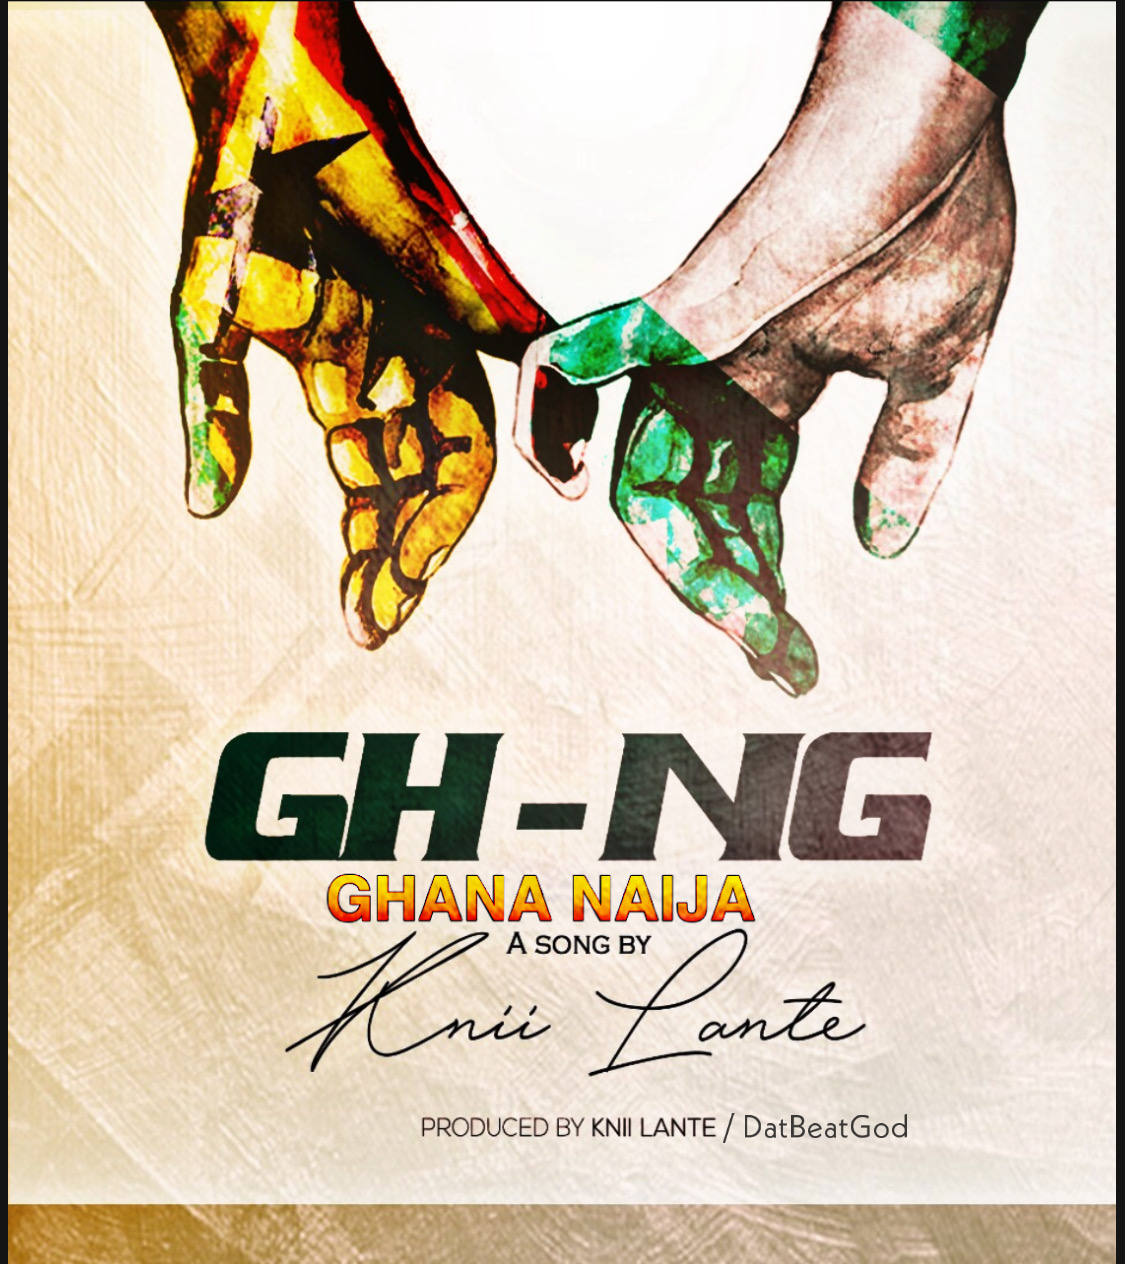 Knii Lante Calls For Better Ghana/Naija Relations With New Single